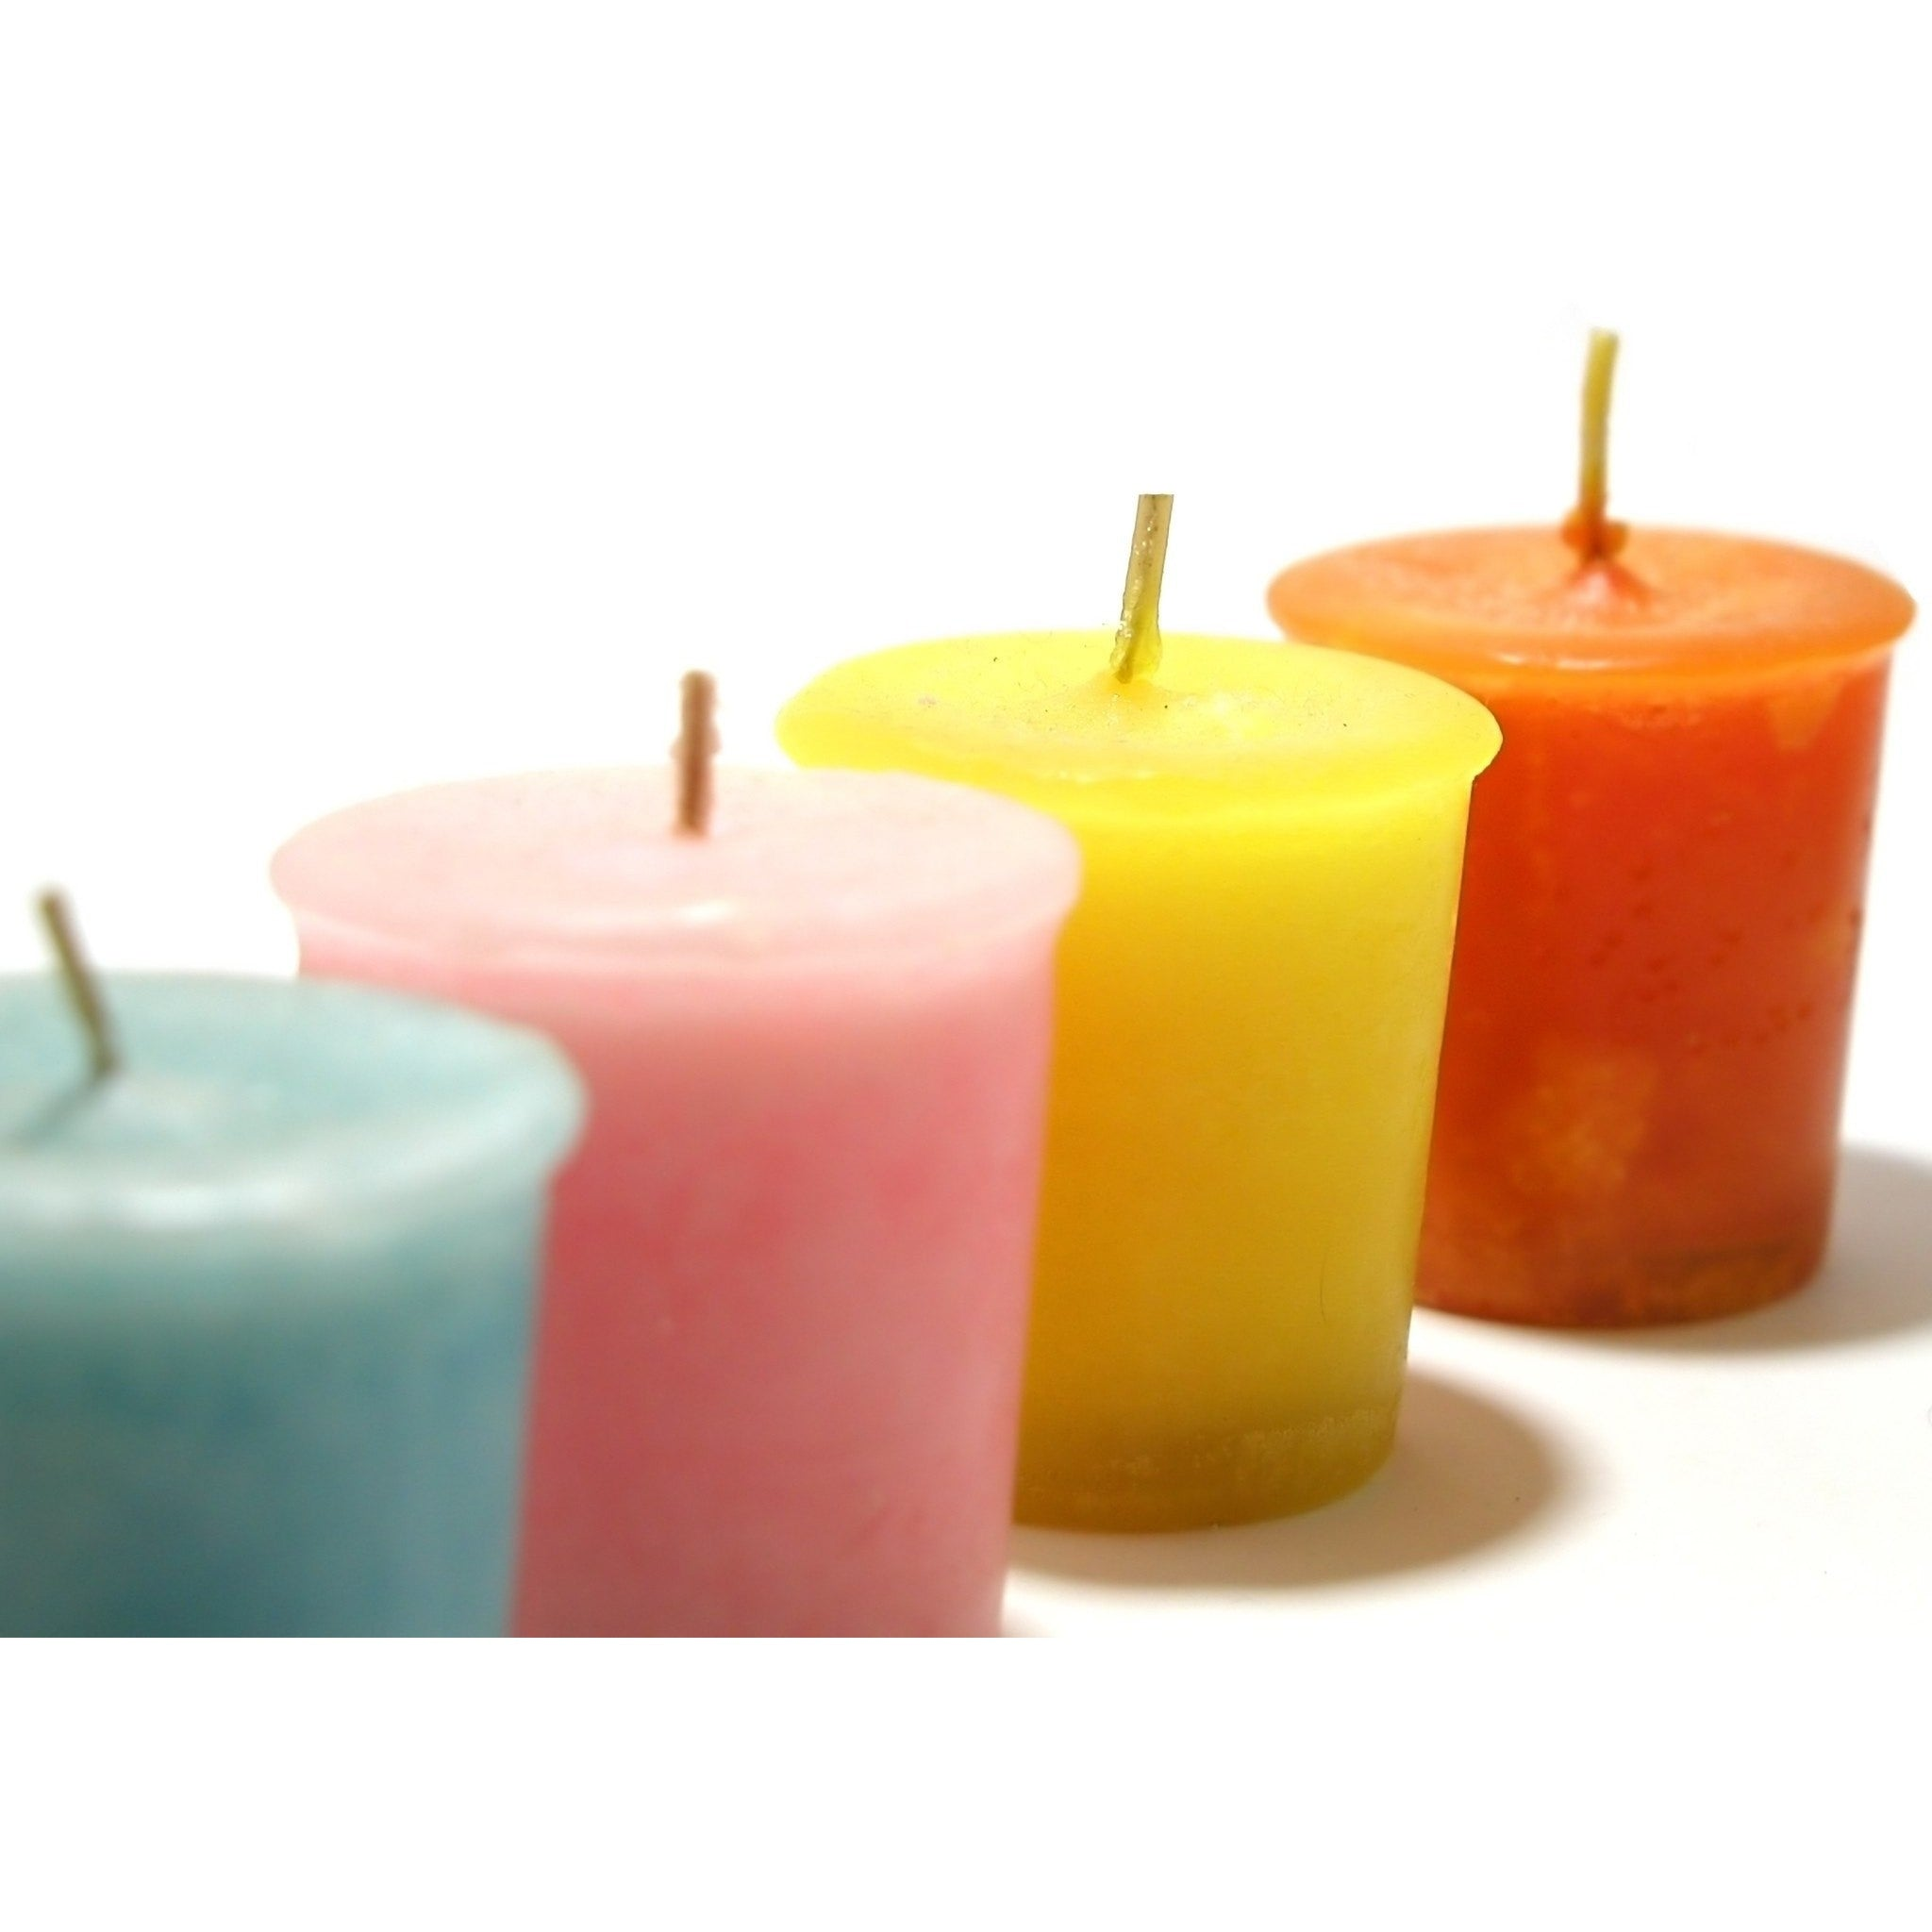 Island-Hibiscus Natural Hand Poured Soy Candles - Votive-Single - Bella-Mia Naturals All Natural Soy Candles & Lip Balms - 11